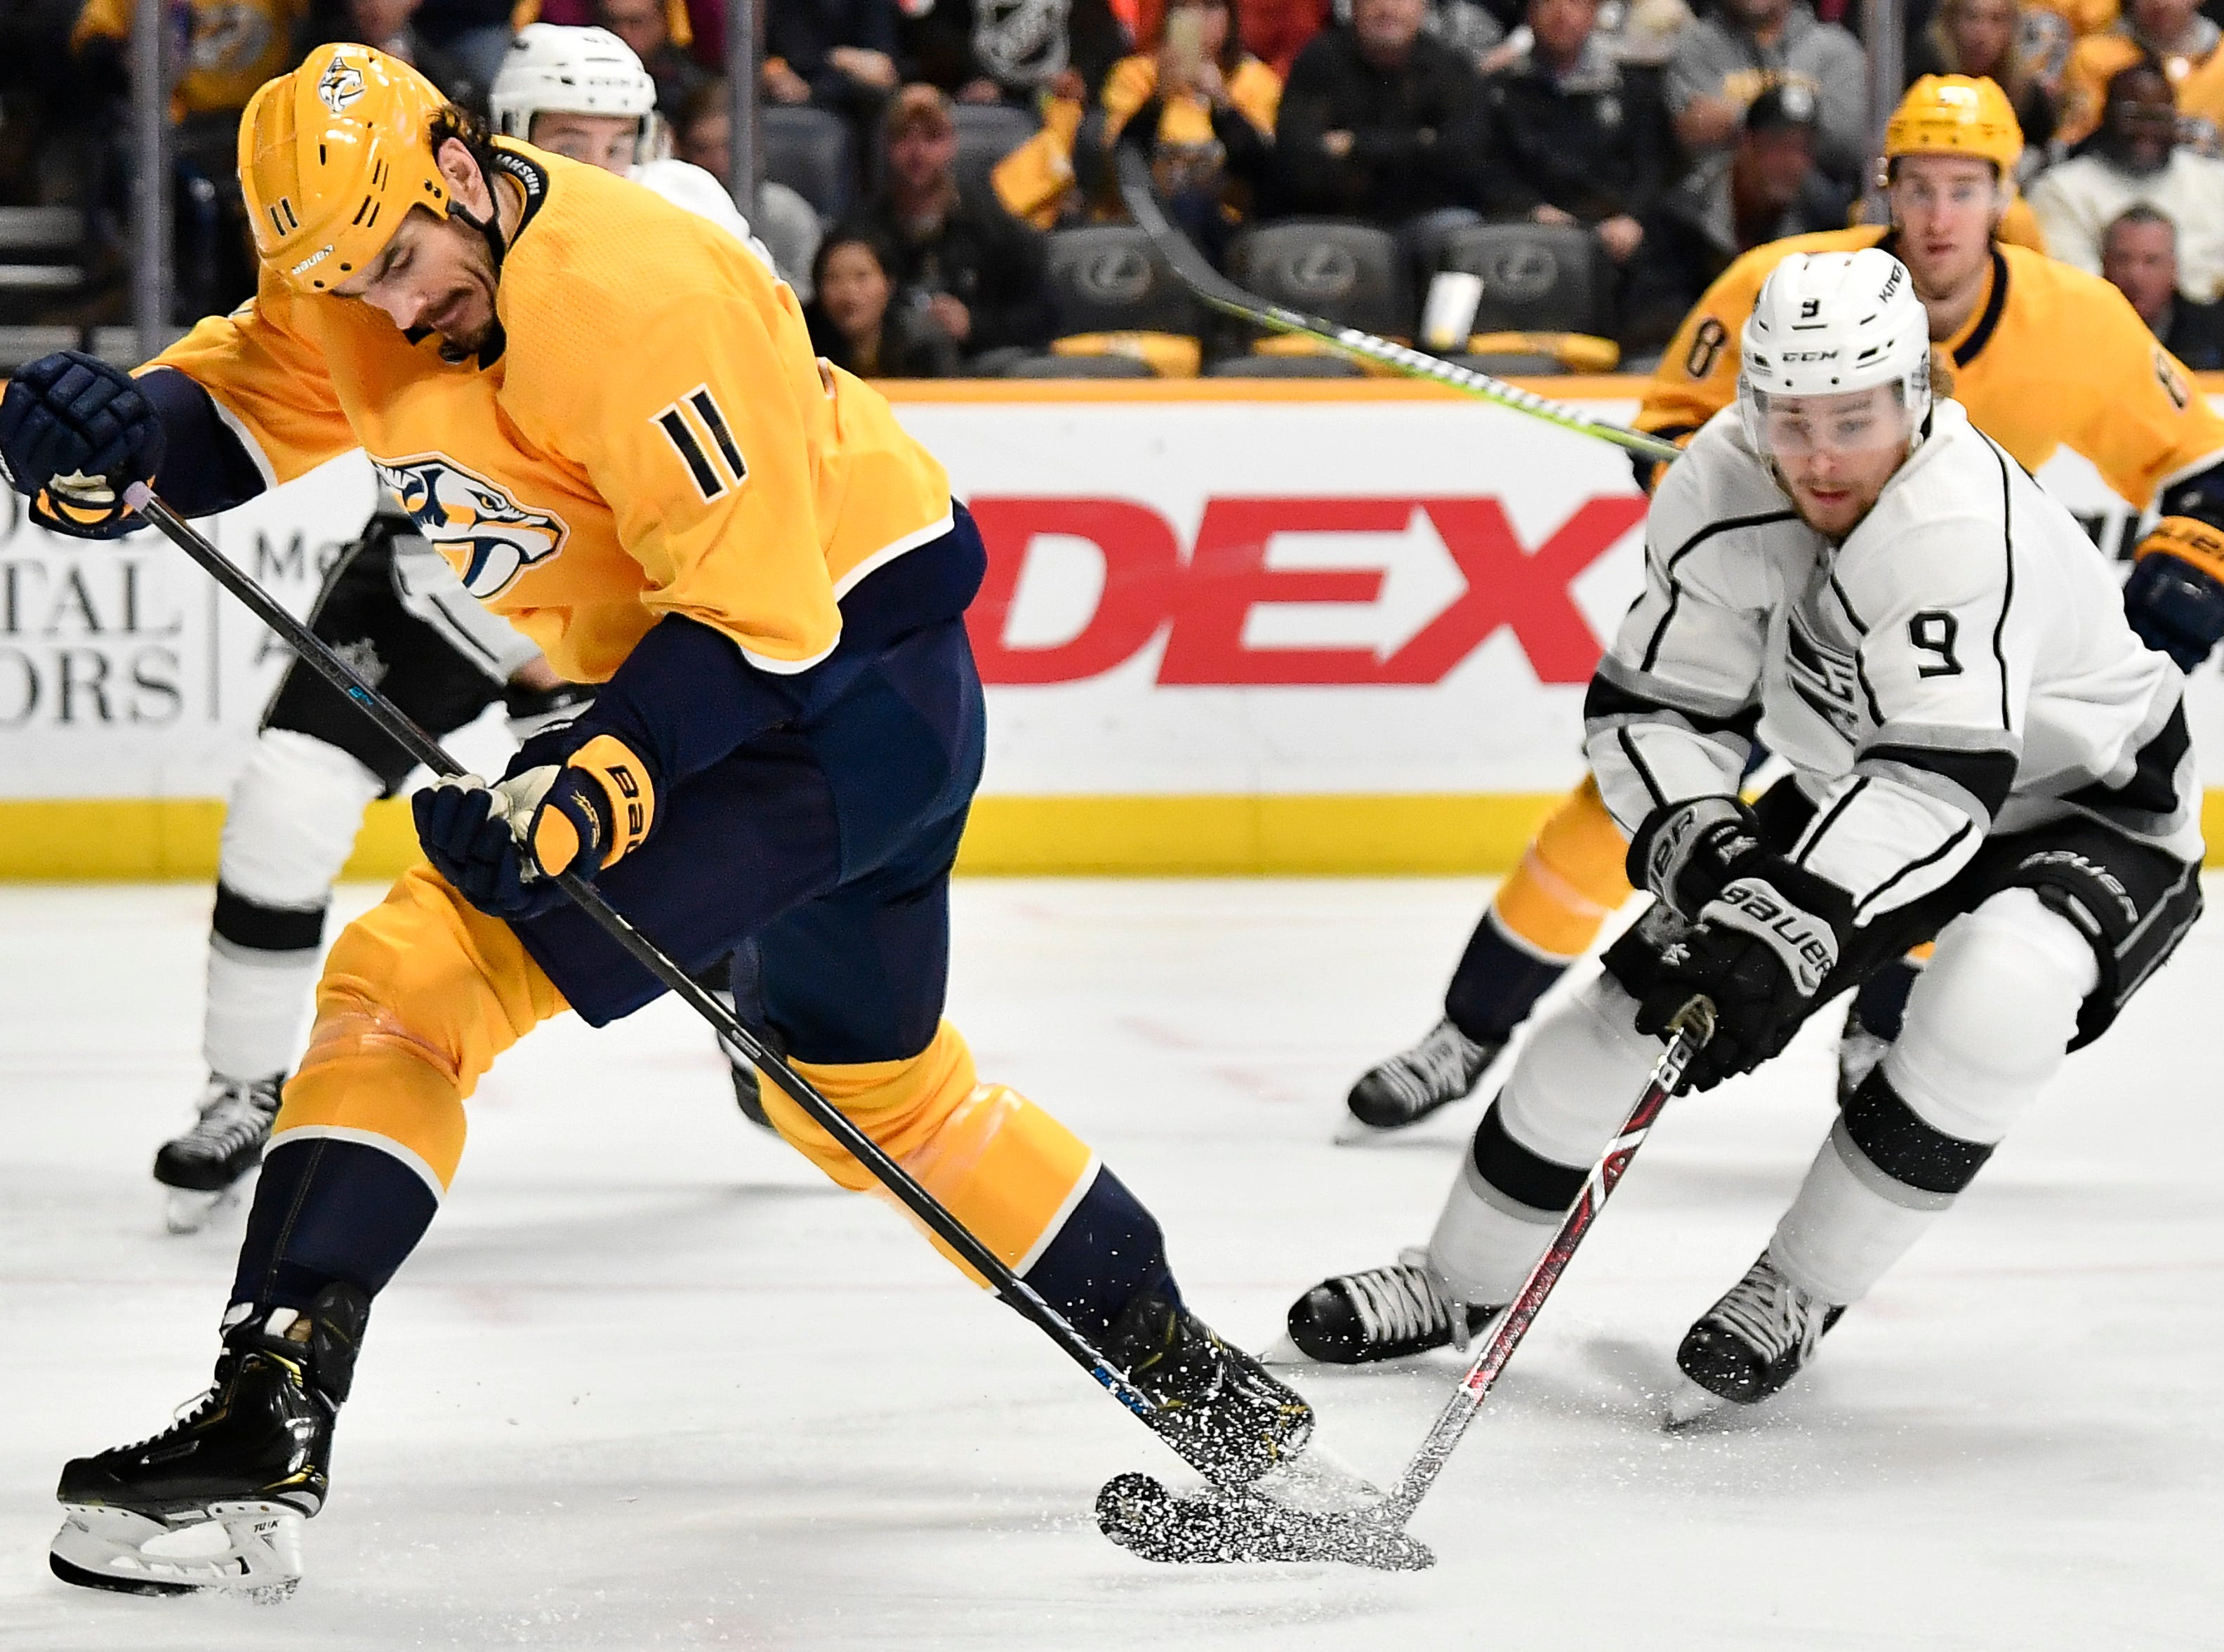 Predators center Brian Boyle (11) takes the puck from Kings center Adrian Kempe (9) during the first period at Bridgestone Arena Thursday, Feb. 21, 2019 in Nashville, Tenn.